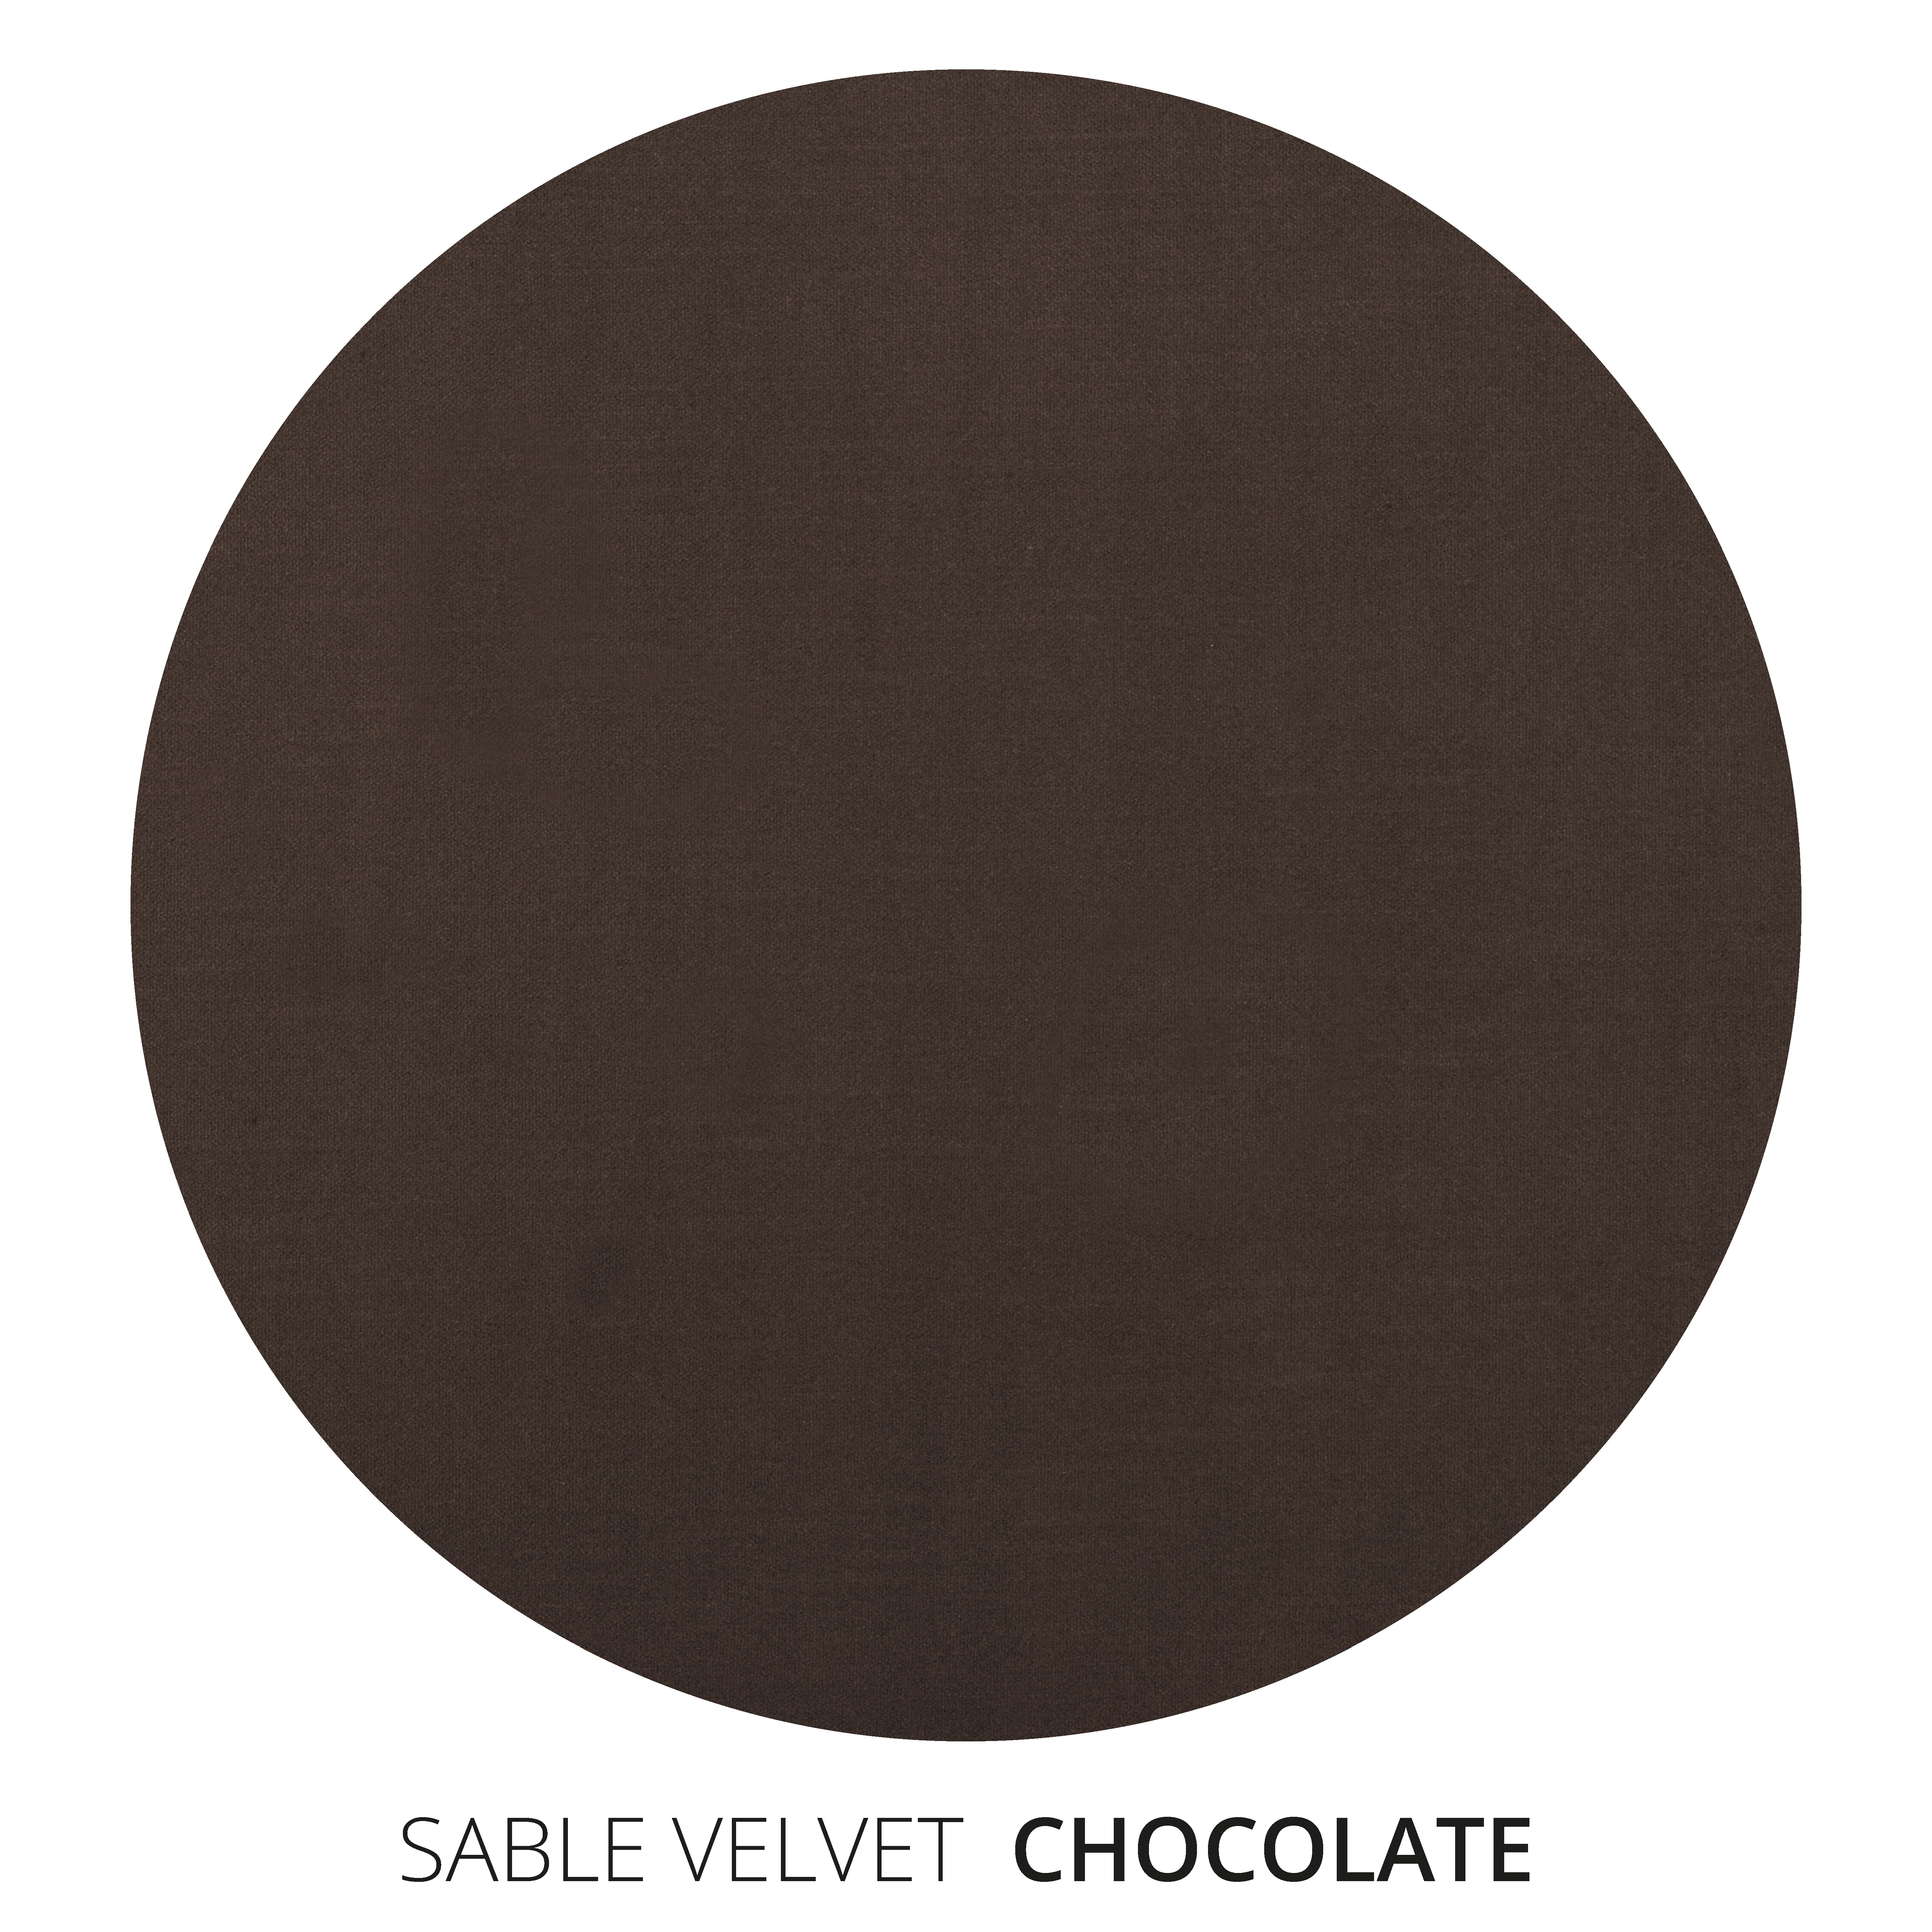 Chocolate Sable Velvet Swatch